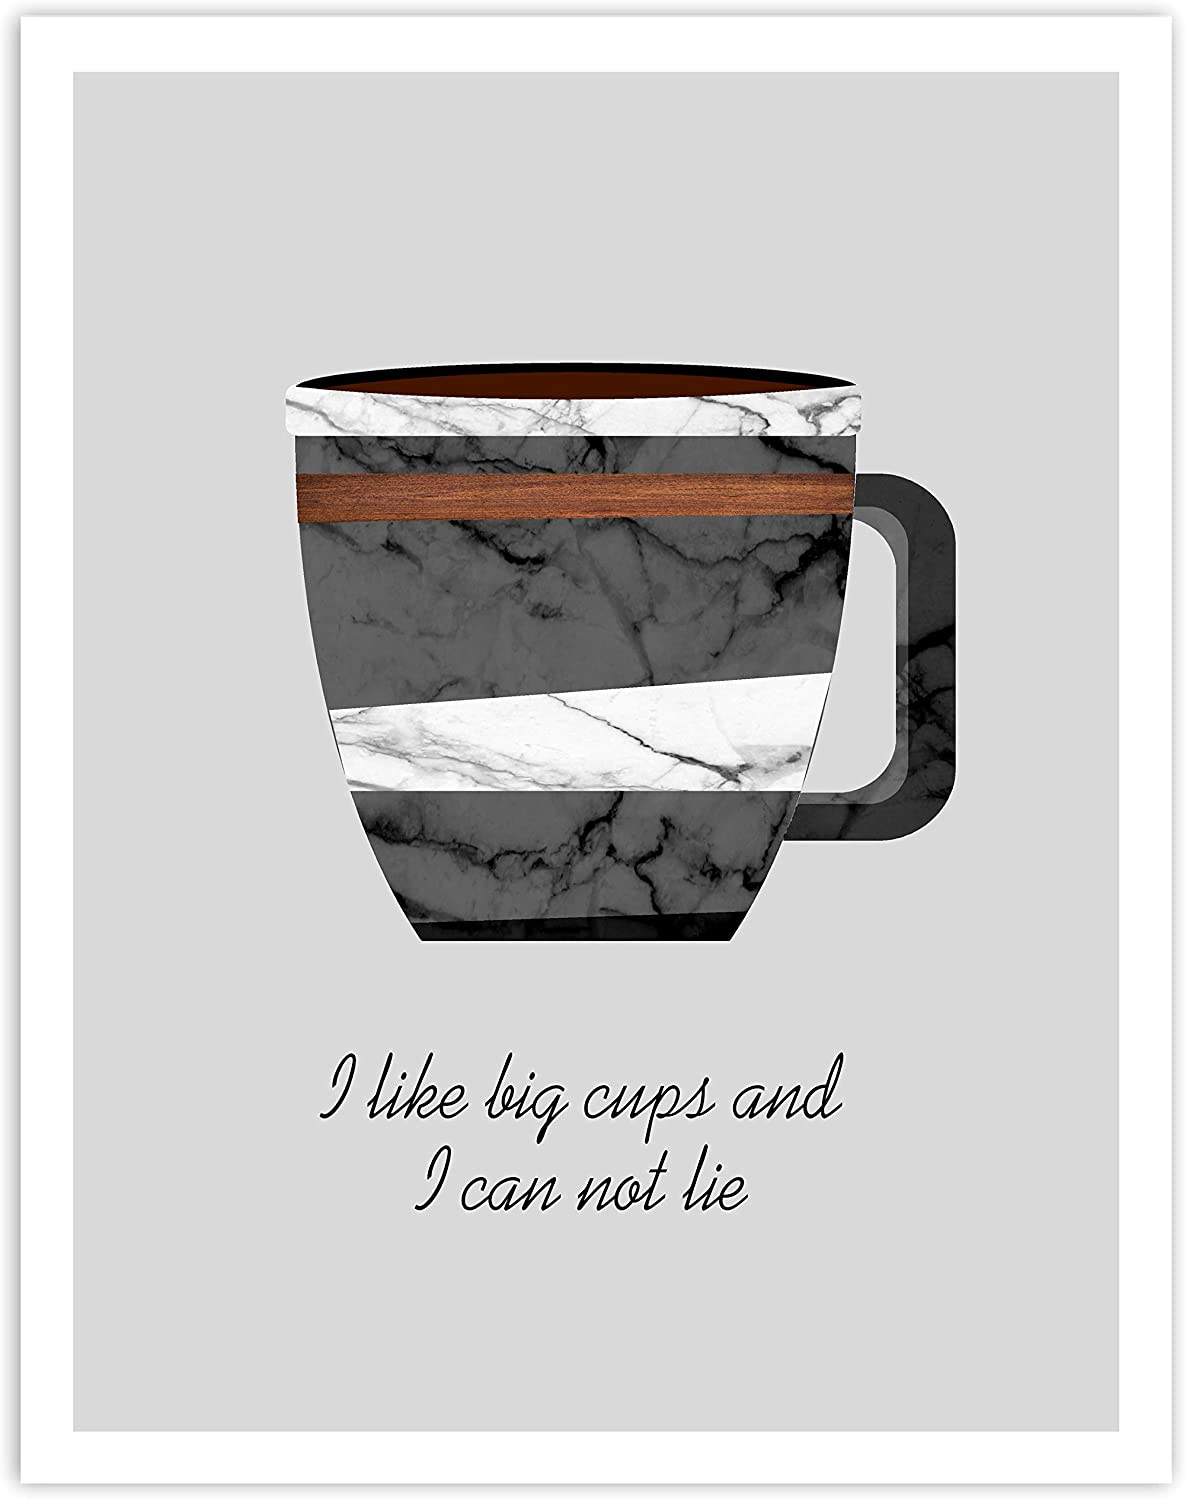 Printsmo, I Like Big Cups and I Can Not Lie, Coffee Lovers Kitchen Decor, Minimalist Modern Art Print Poster, Contemporary Wall Art for Home Decor 11x14 inches, Unframed